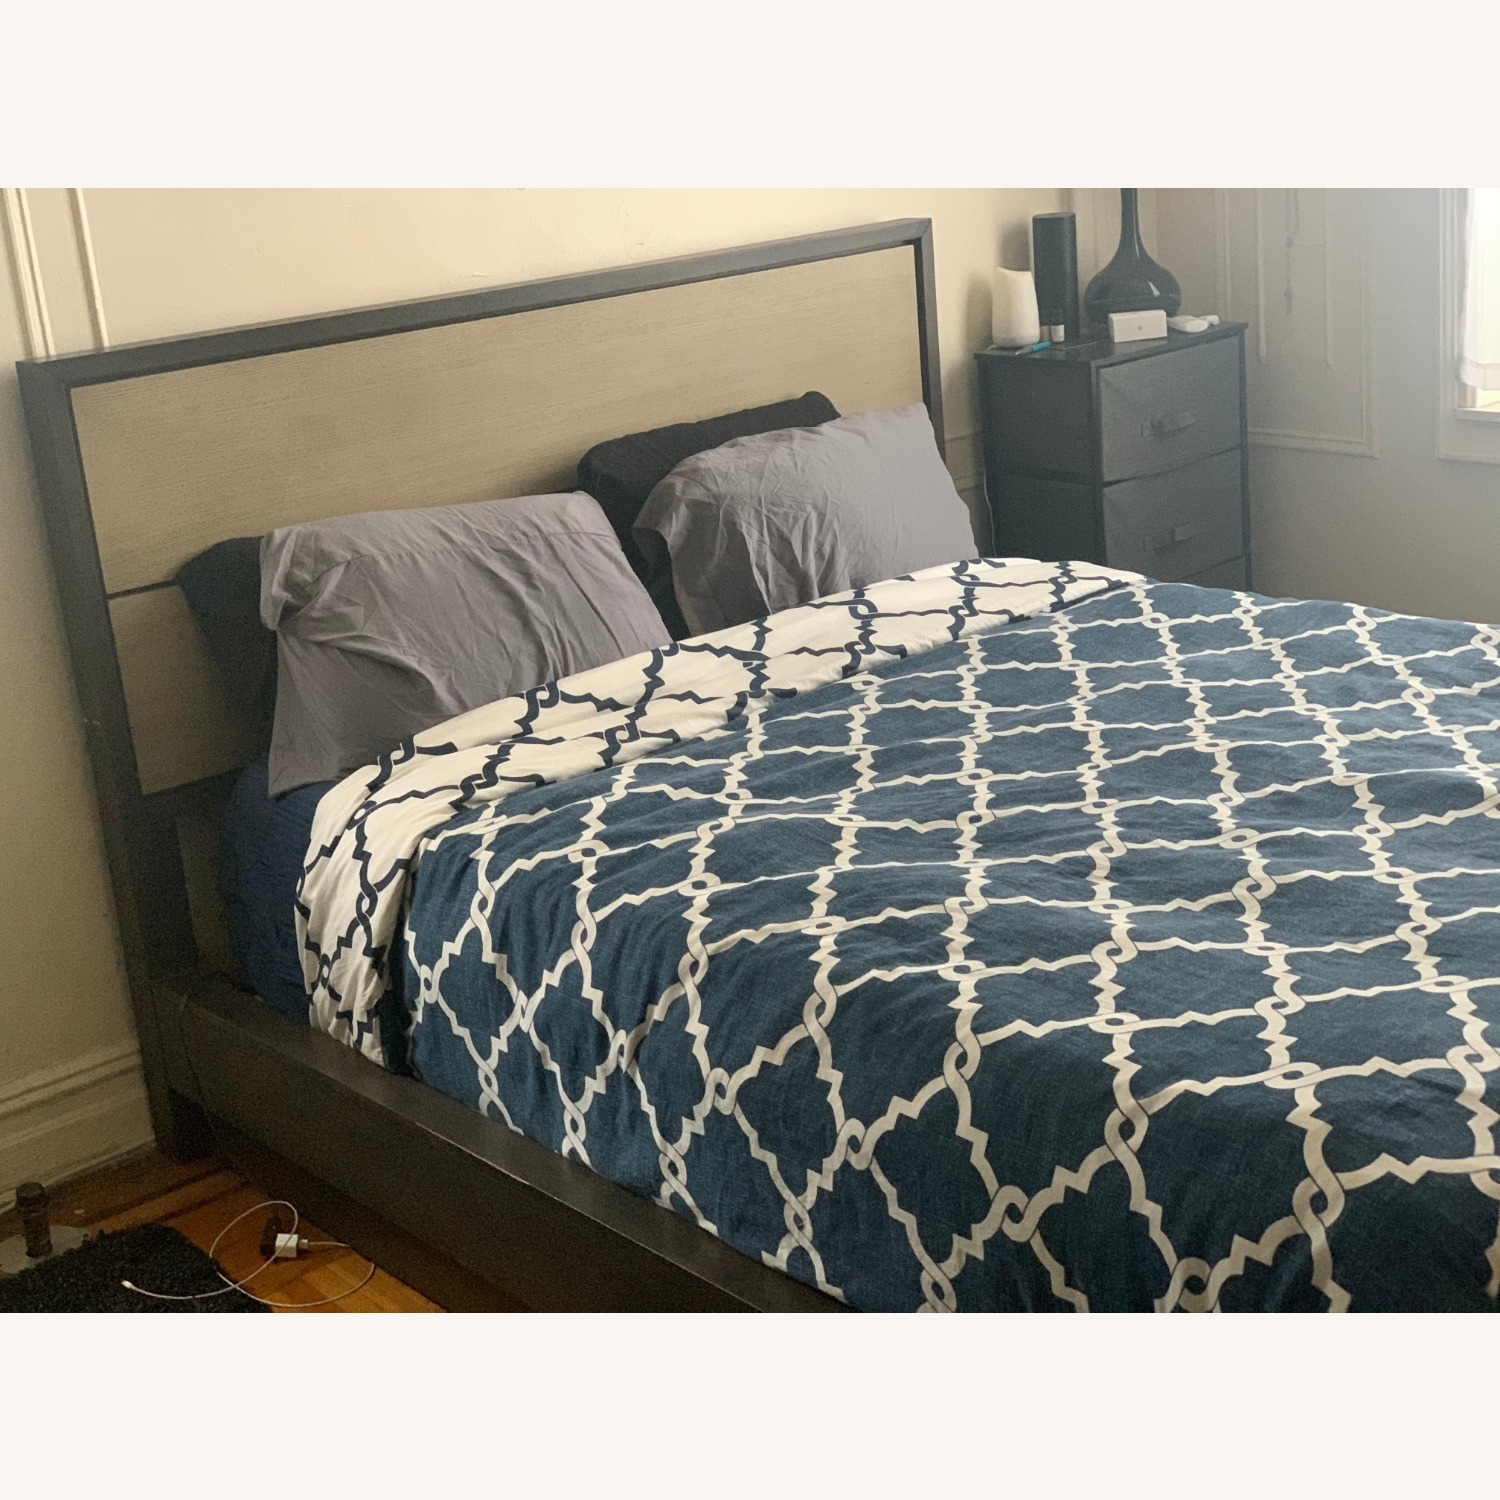 Macy's Queen Size Tribeca Bed Frame - image-2